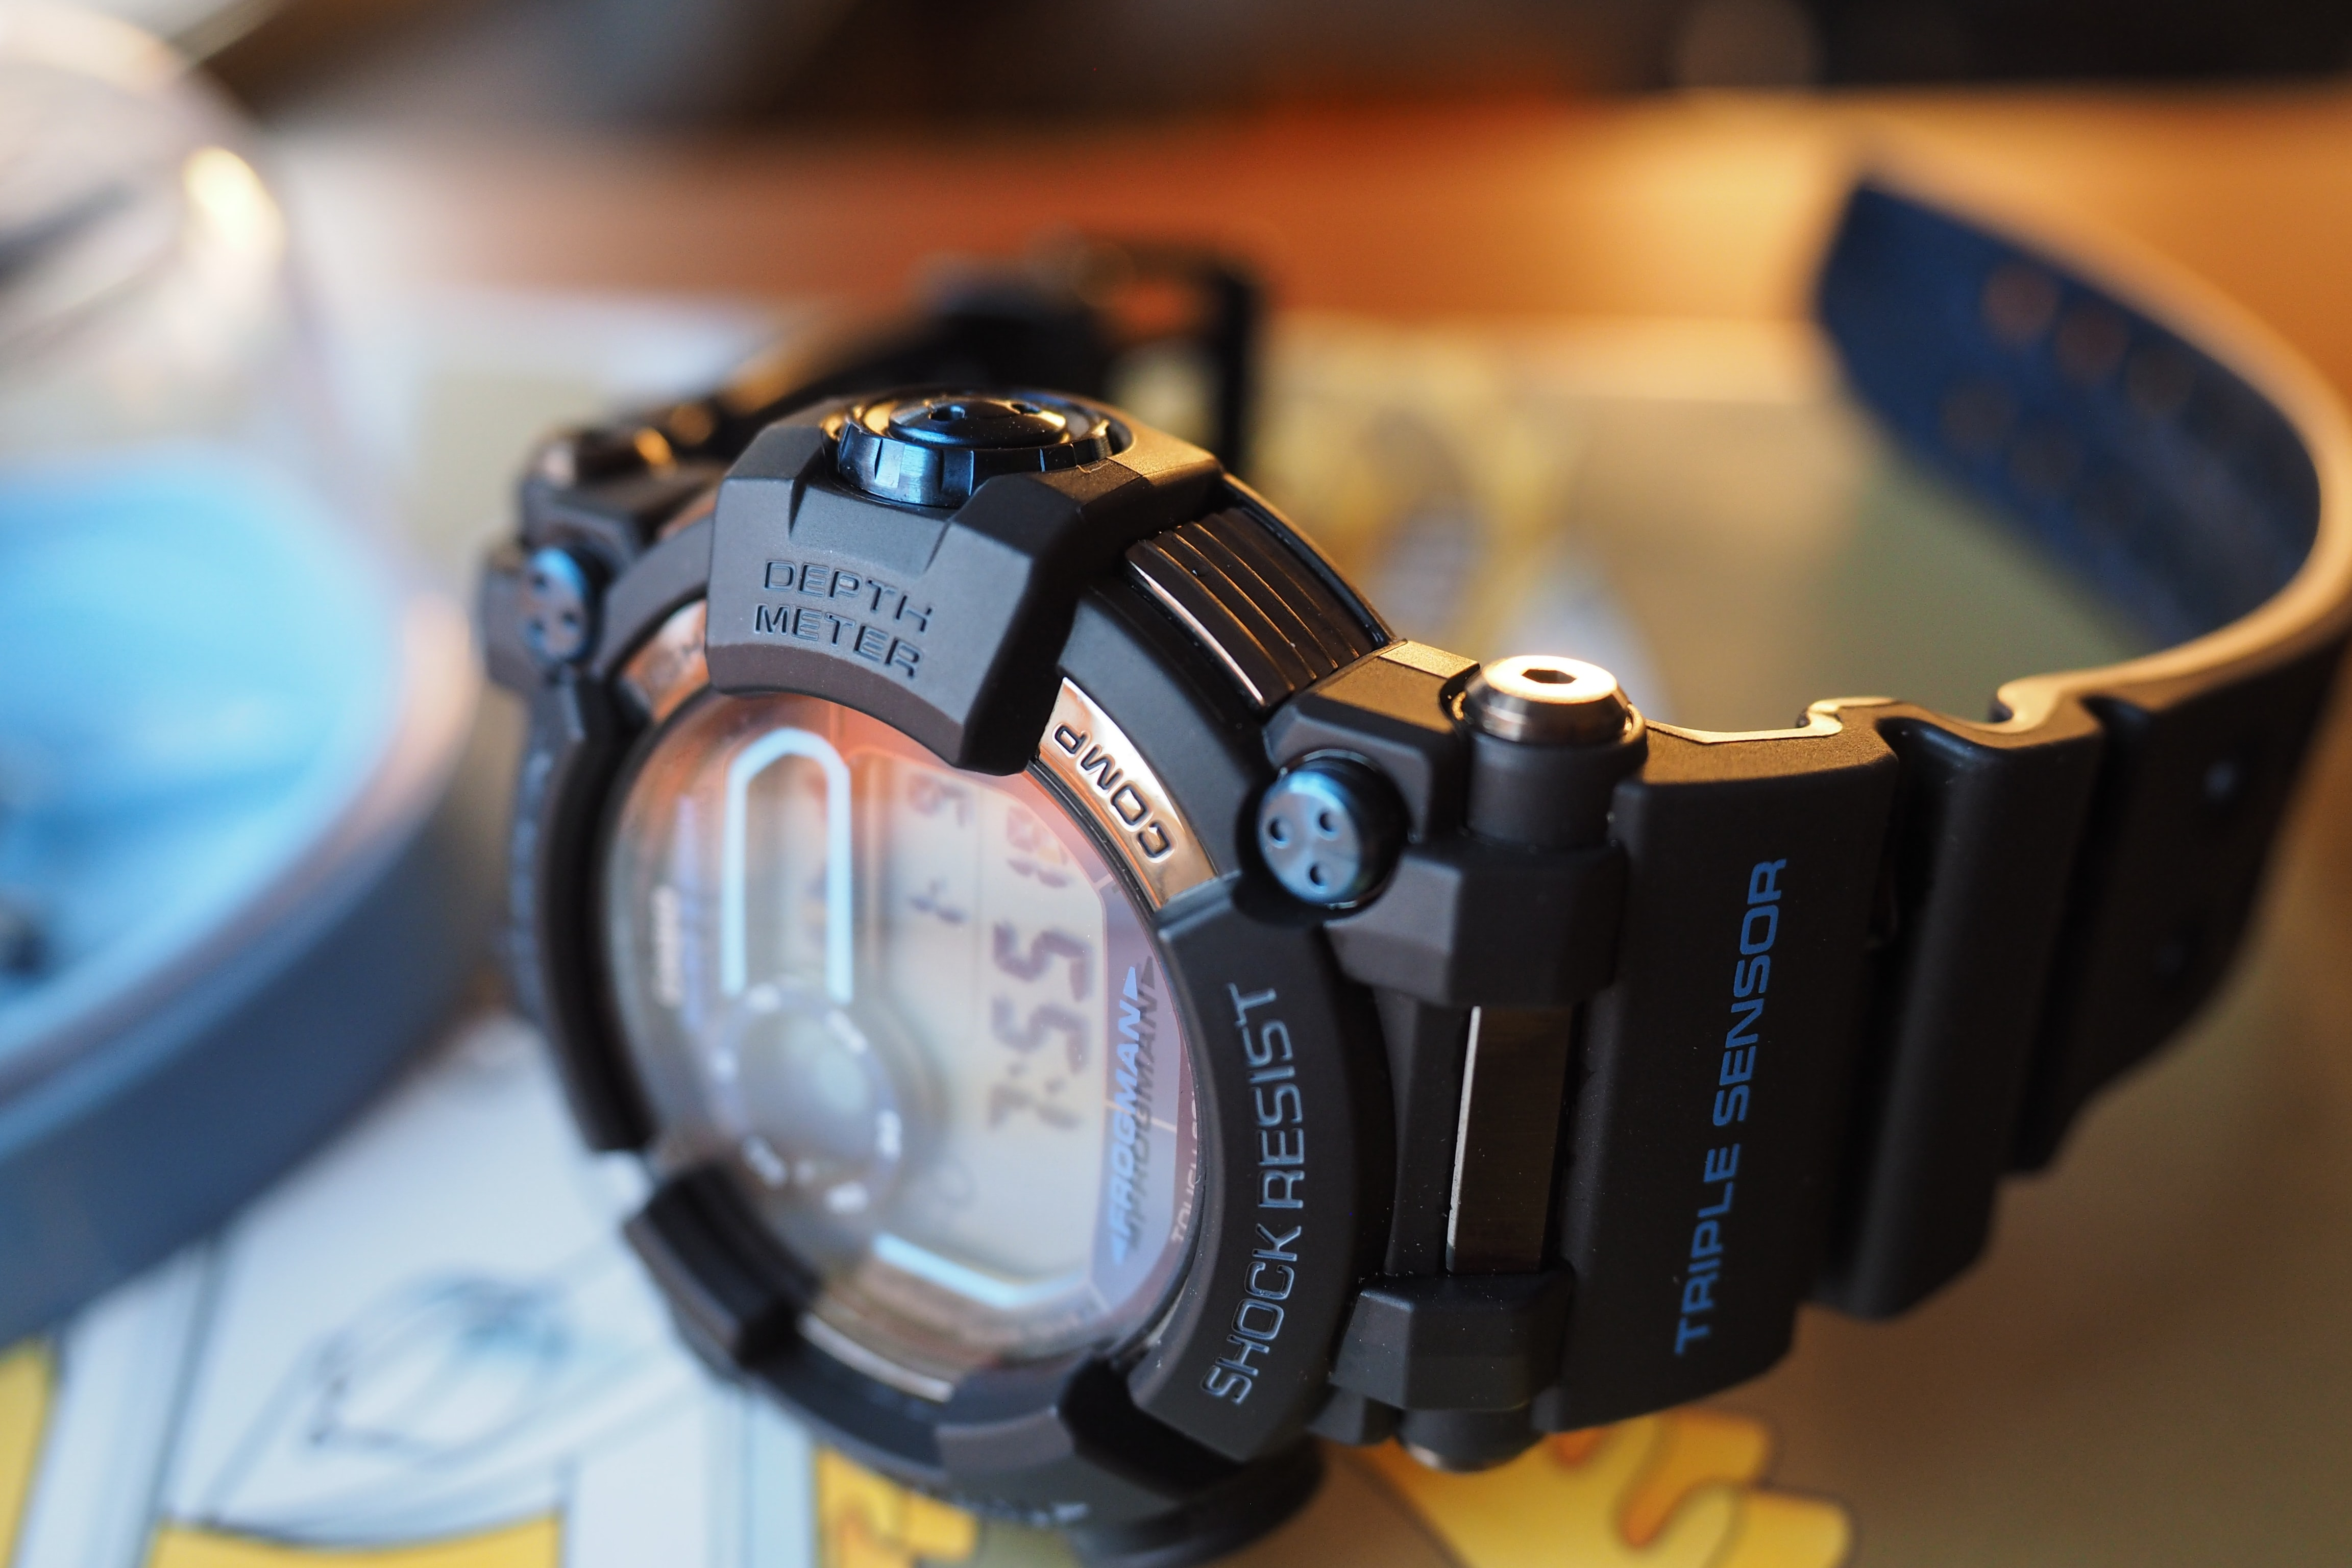 G-Shock Frogman GWF-D1000B case screw A Week On The Wrist: The Casio 'Master Of G' G-Shock Frogman GWF-D1000B, A Great Watch To Wear For Punching A T. Rex A Week On The Wrist: The Casio 'Master Of G' G-Shock Frogman GWF-D1000B, A Great Watch To Wear For Punching A T. Rex P1091519